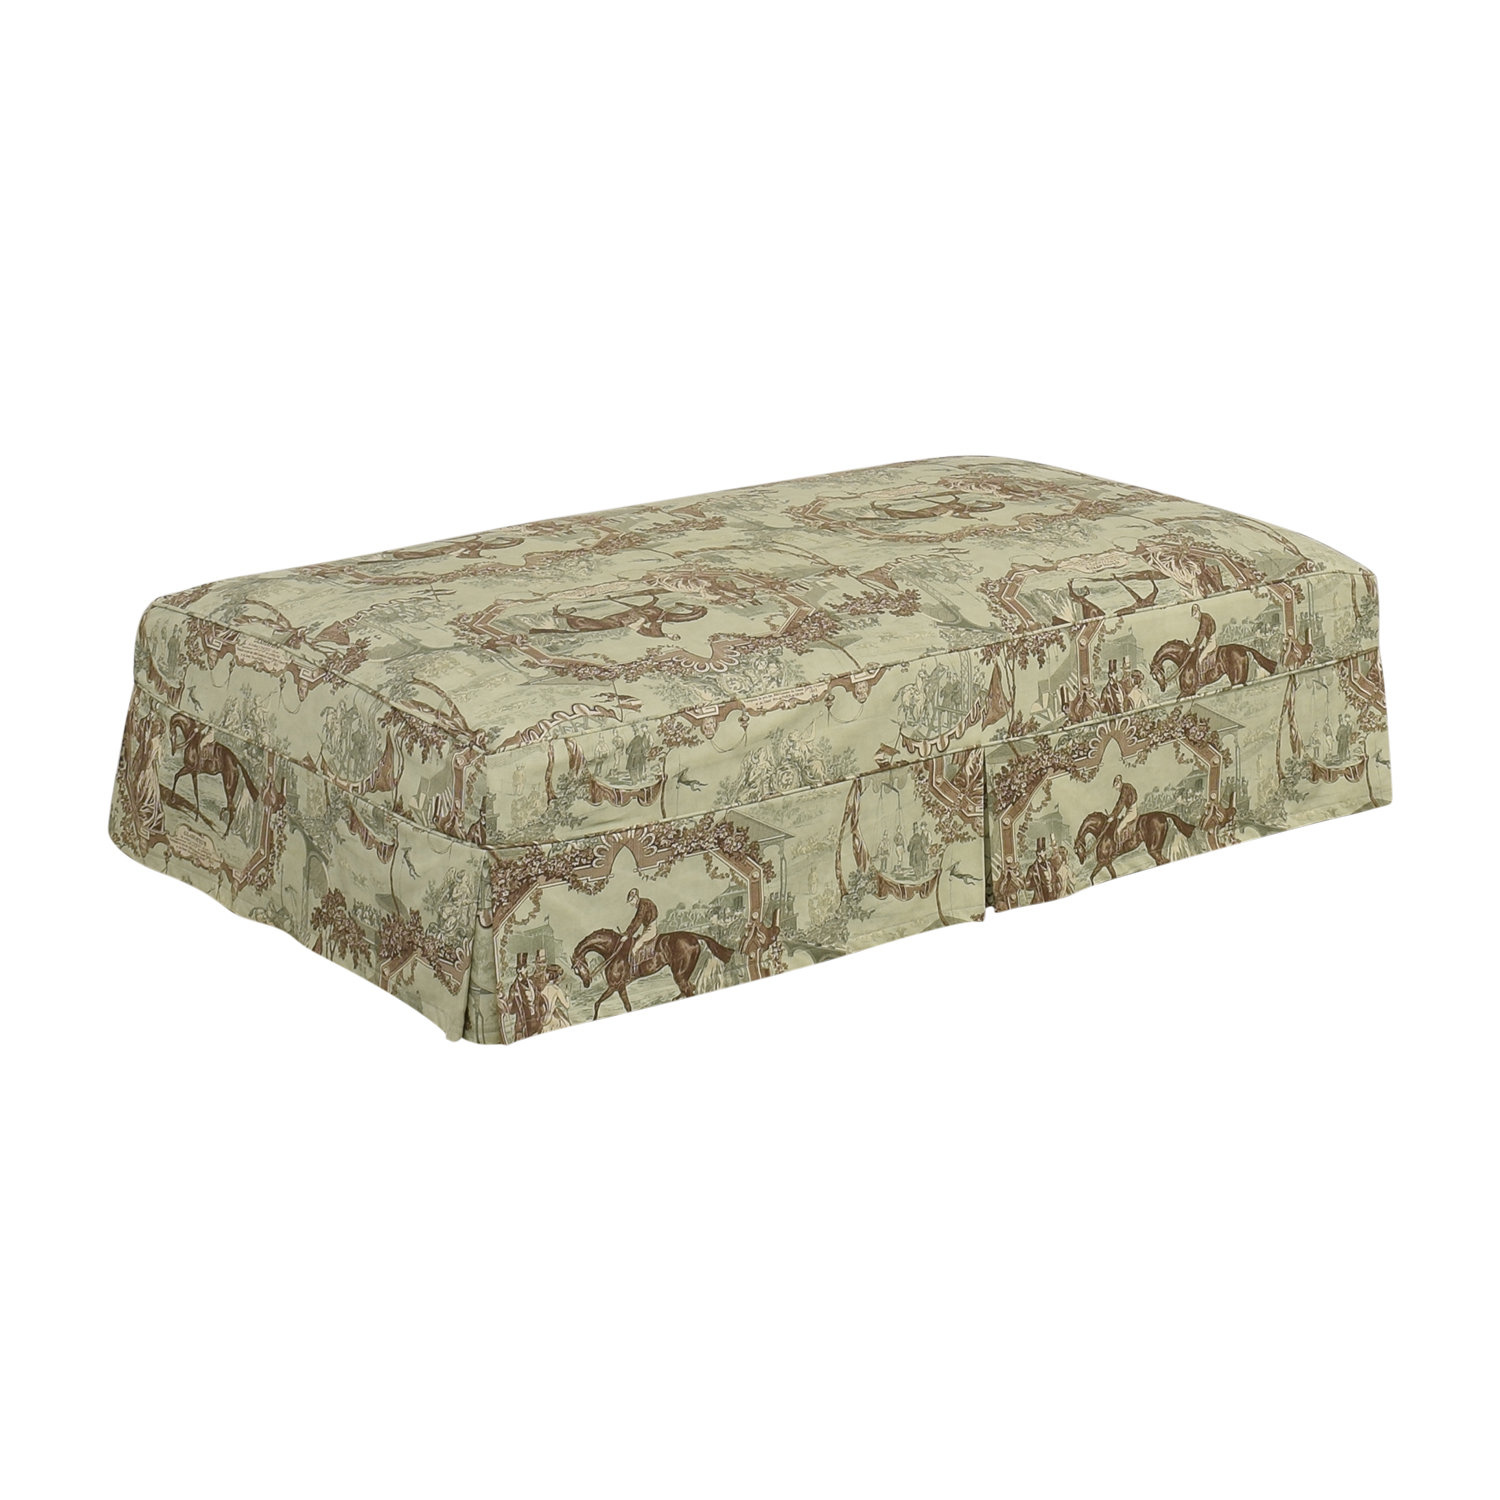 Custom Slipcovered Ottoman price